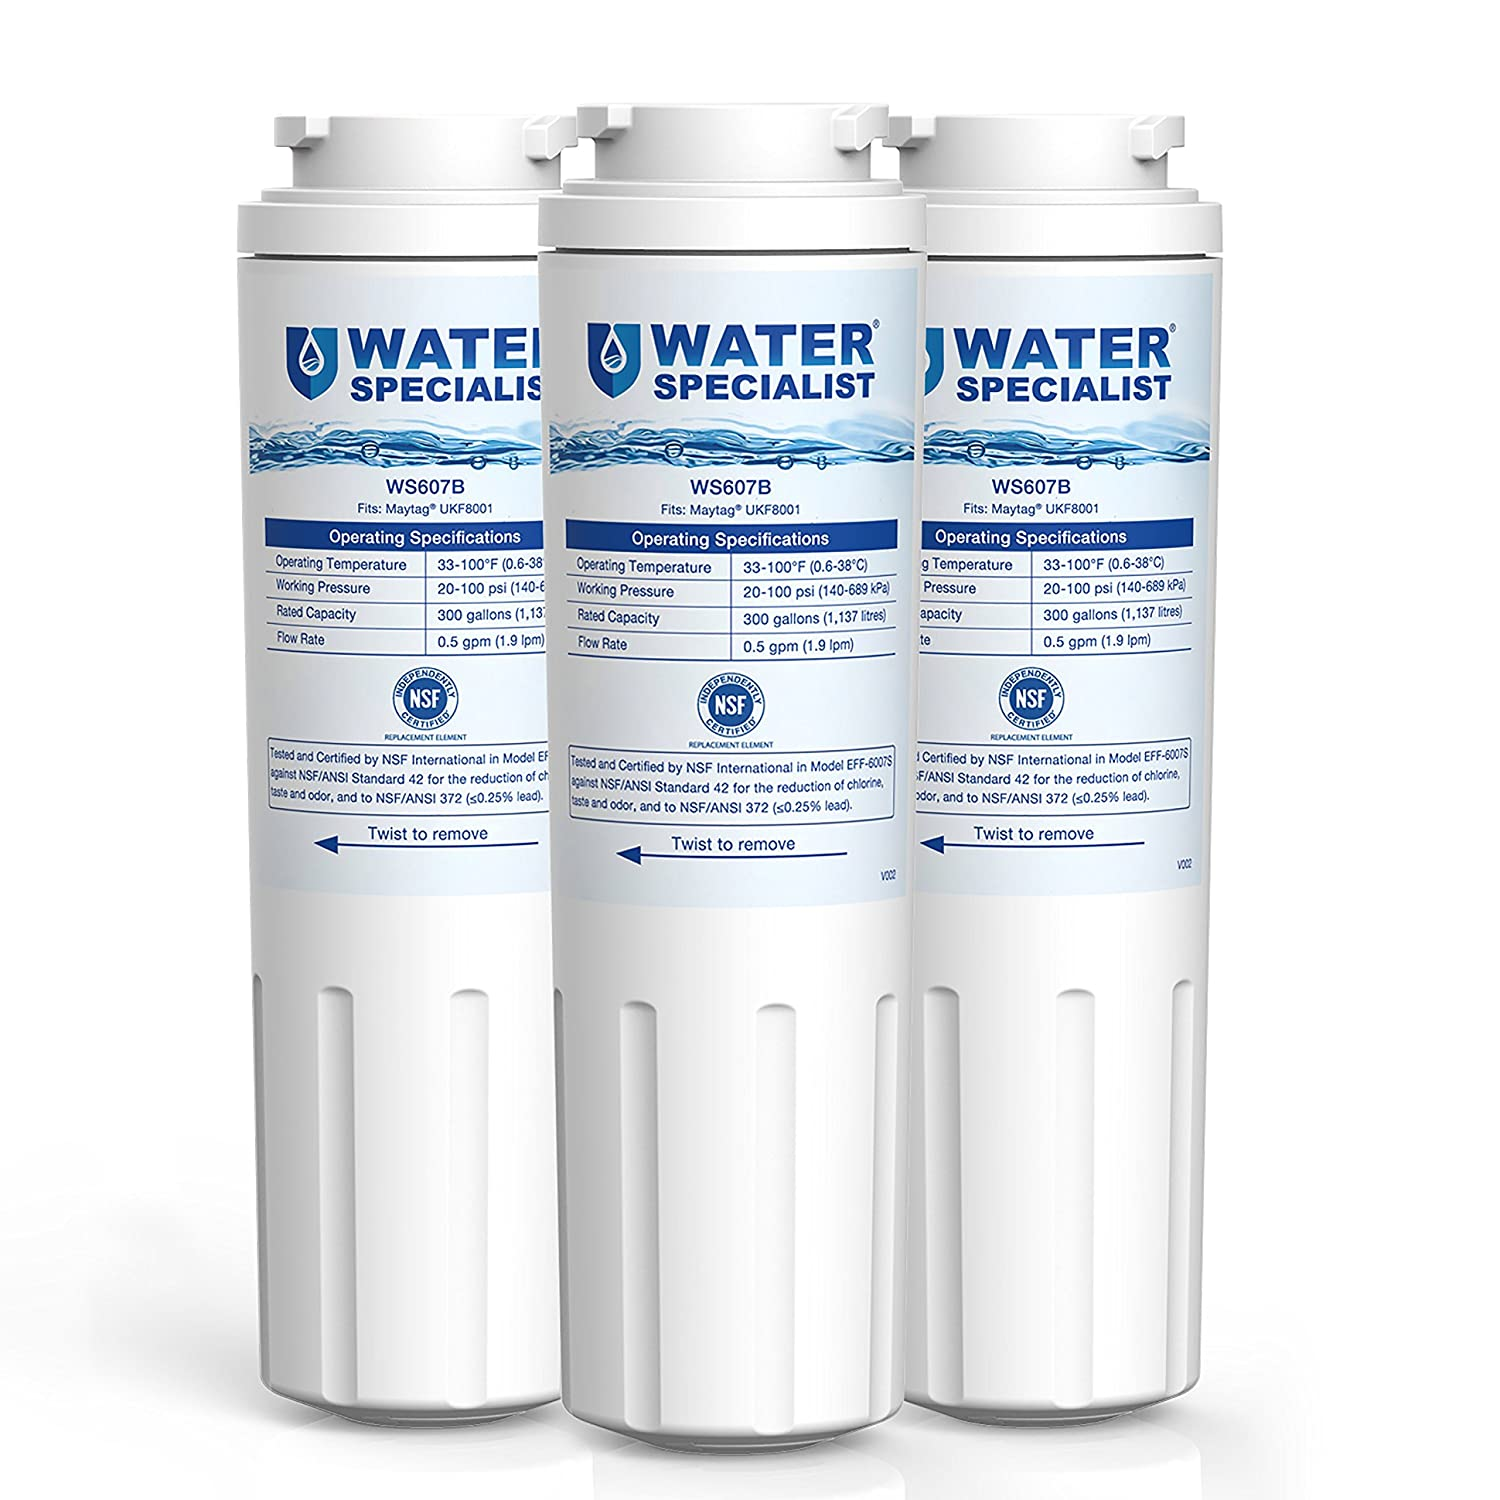 Waterspecialist UKF8001 Refrigerator Water Filter, Replacement for Maytag, PUR, Jenn-Air, Filter 4, 4396395, UKF8001AXX, UKF8001AXX-200, UKF8001AXX-750 (Pack of 3)